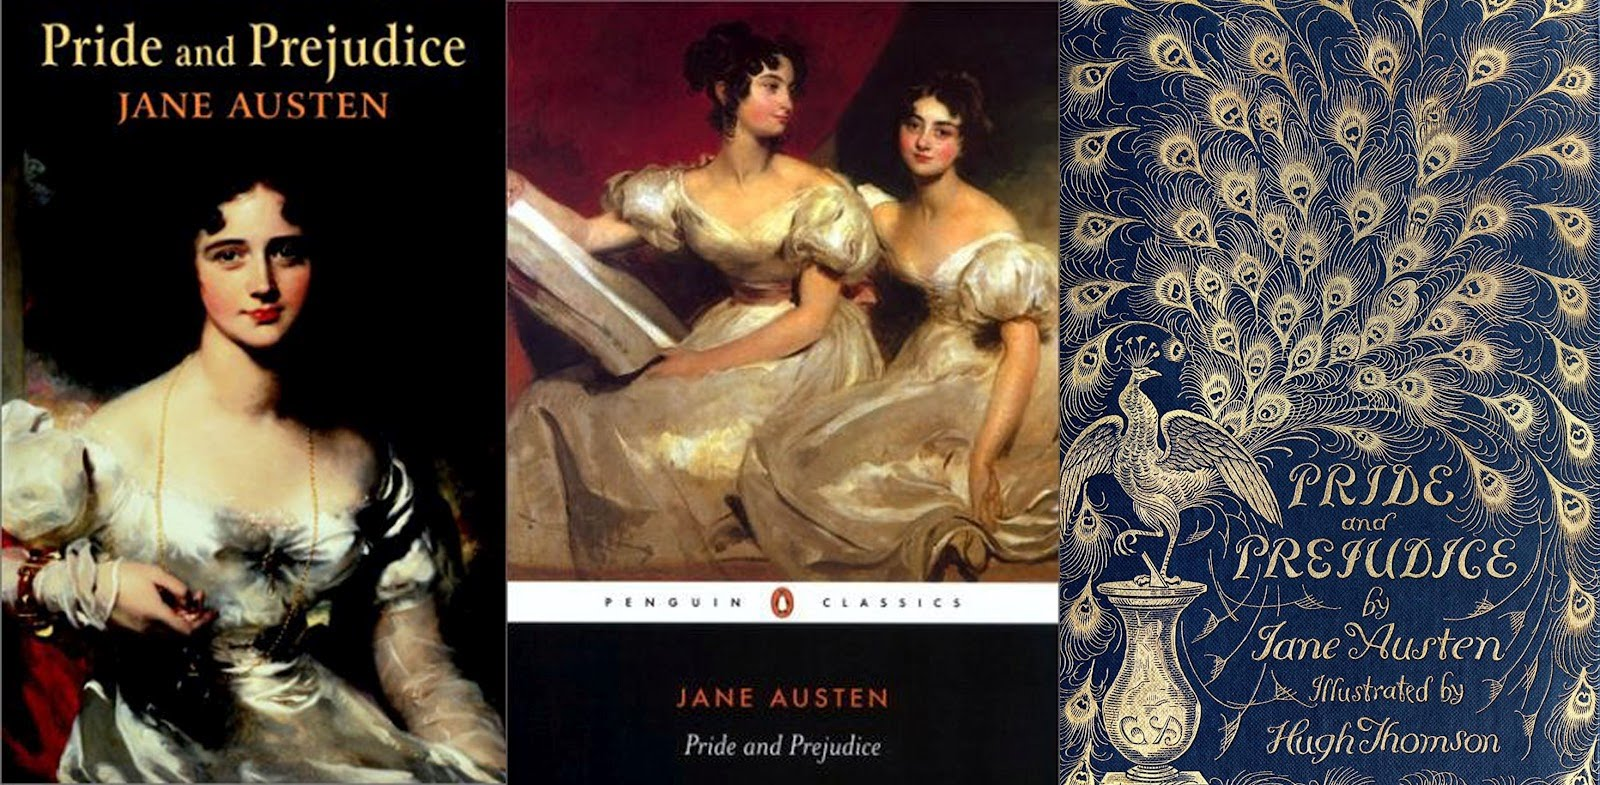 a summary of the novel pride and prejudice by jane austen First published in 1813, pride and prejudice has consistently been jane austen's most popular novel it portrays life in the genteel rural society of the day, and tells of the initial misunderstandings and later mutual enlightenment between elizabeth bennet (whose liveliness and quick wit have often attracted readers) and the haughty darcythe title pride and prejudice refers (among other.